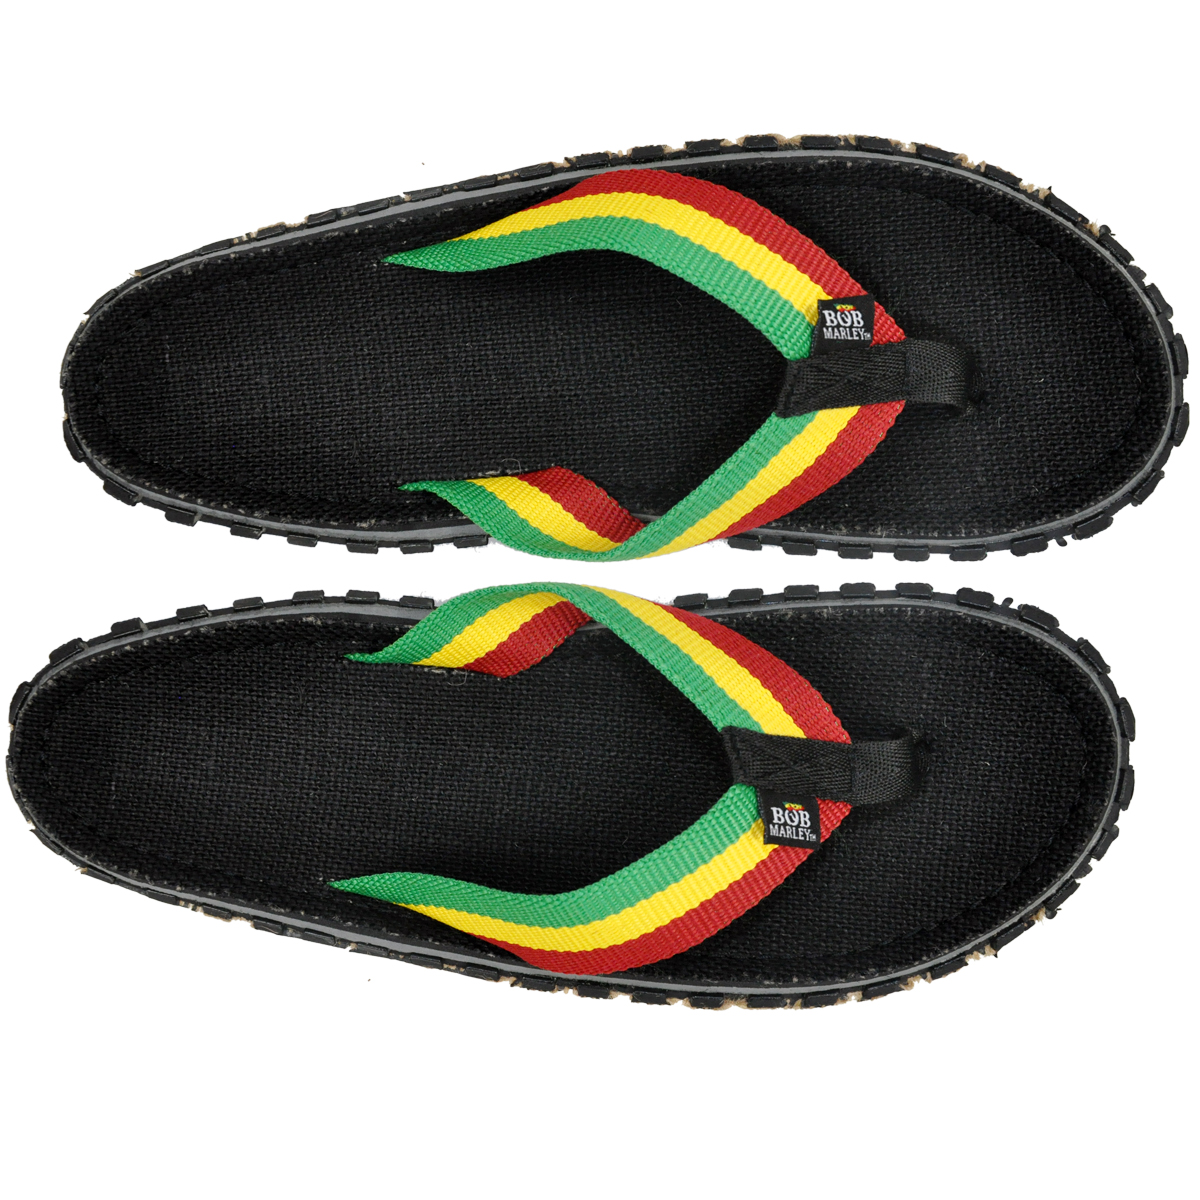 Rasta Shoes For Sale